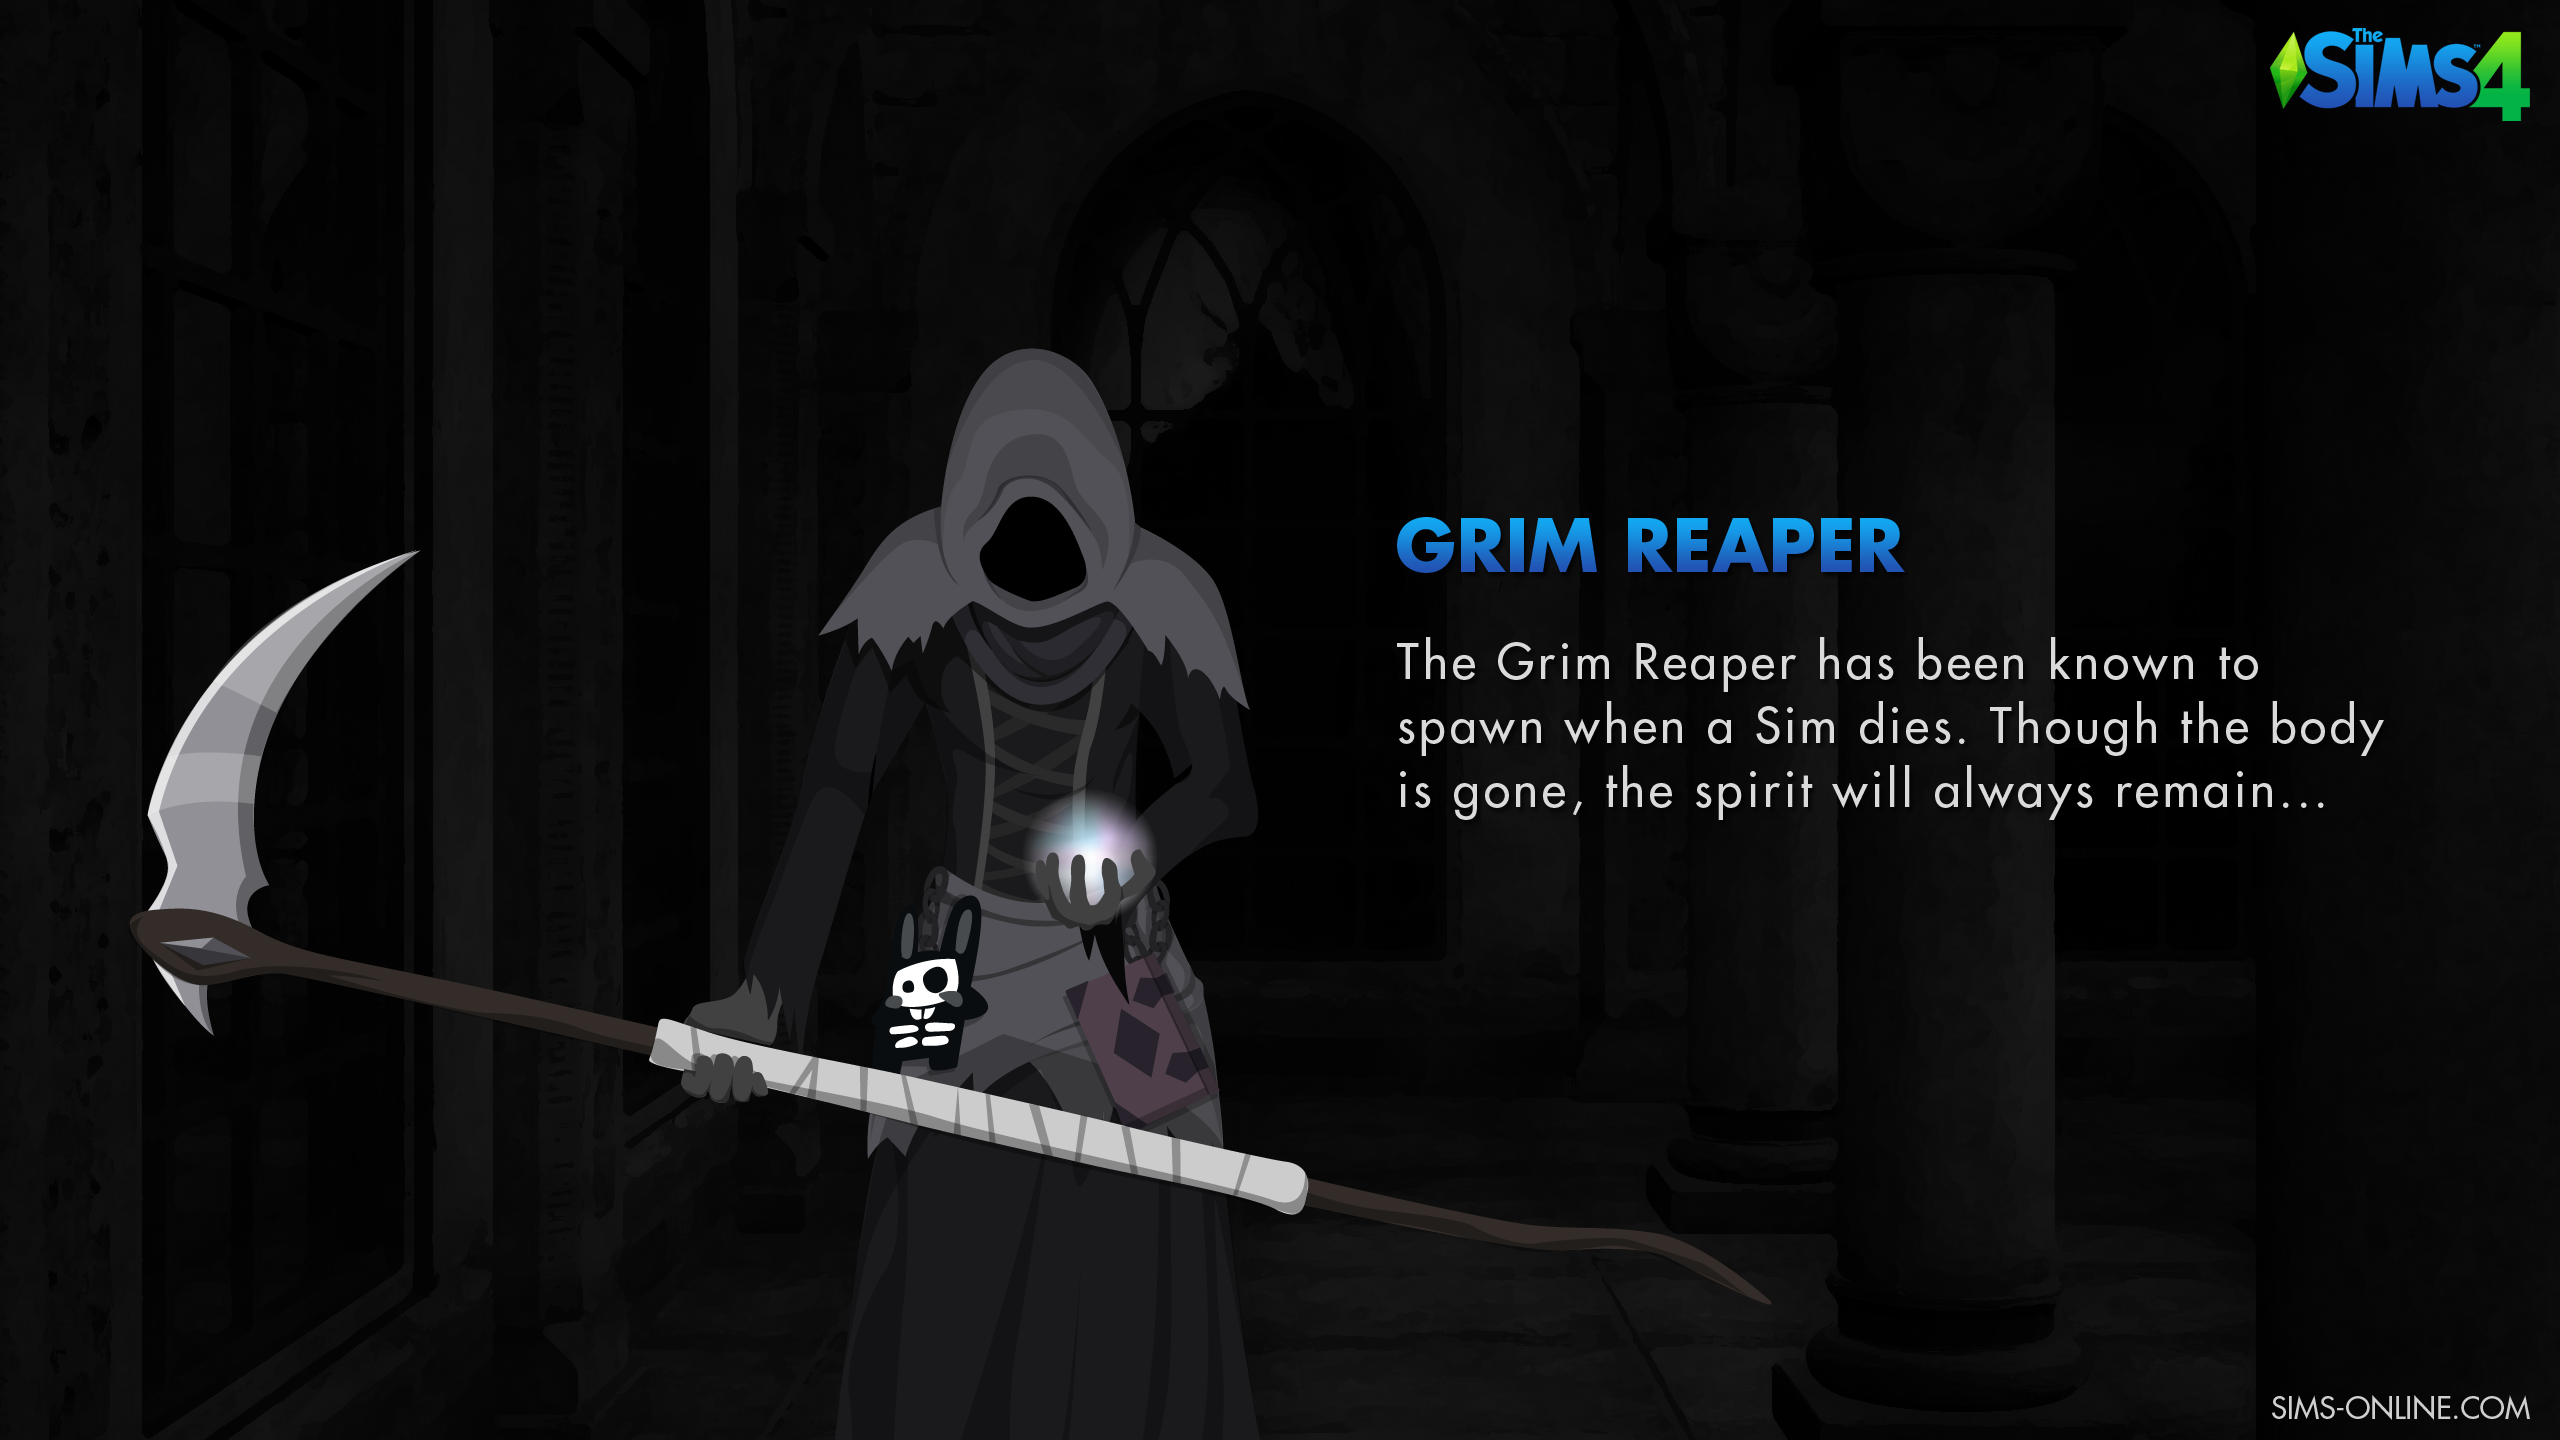 Free Download The Sims 4 Grim Reaper Wallpaper Sims Online